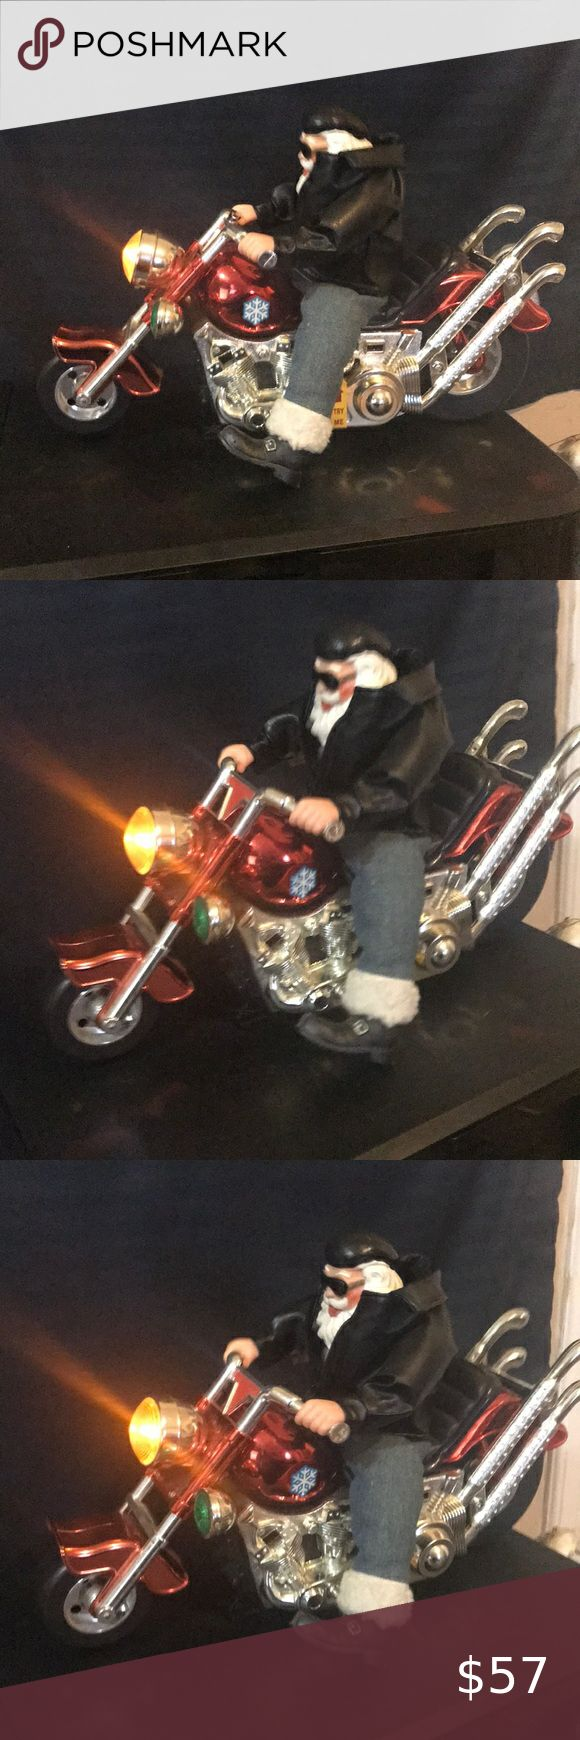 Musical Born To Be Wild Santa Claus On Motorcycle Santa Claus Musicals Rock And Play